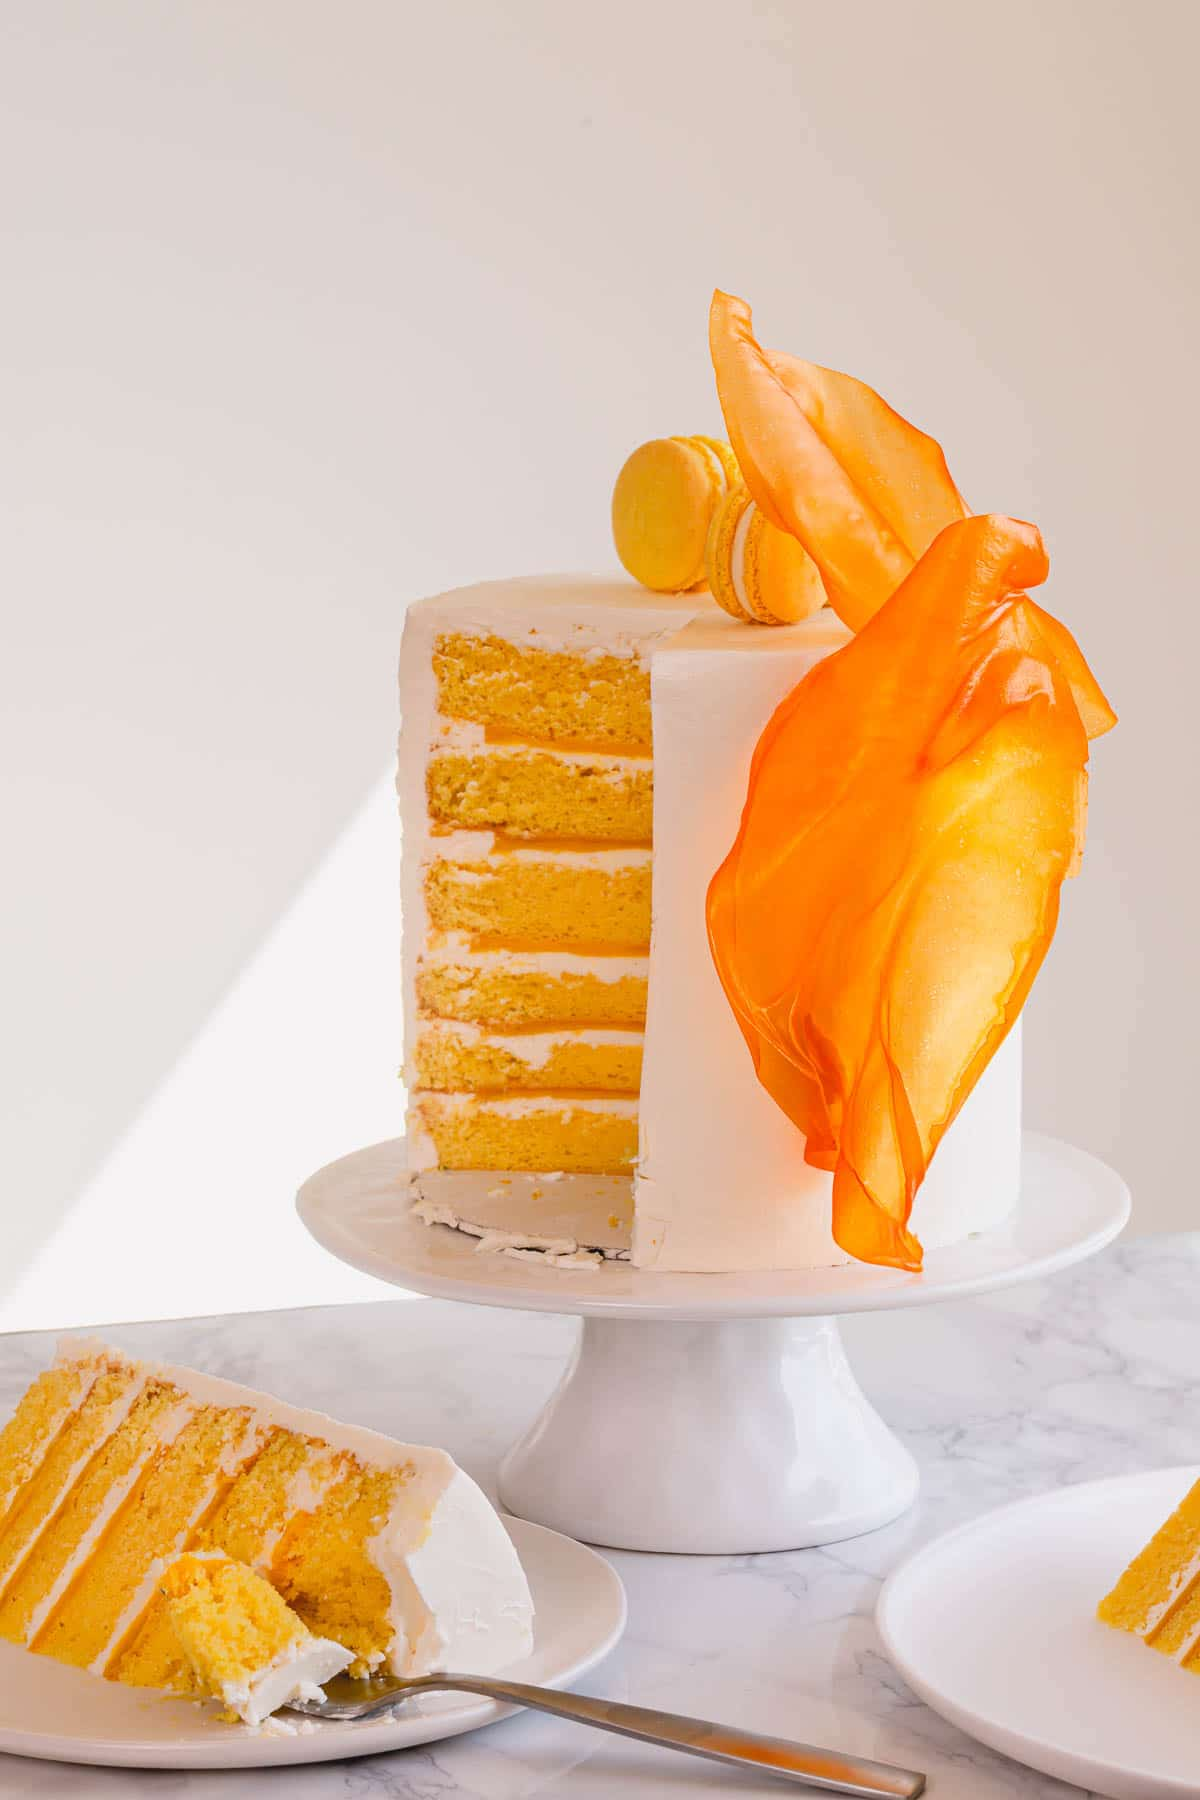 A tall cake on cake stand & slice of cake on plate with fork